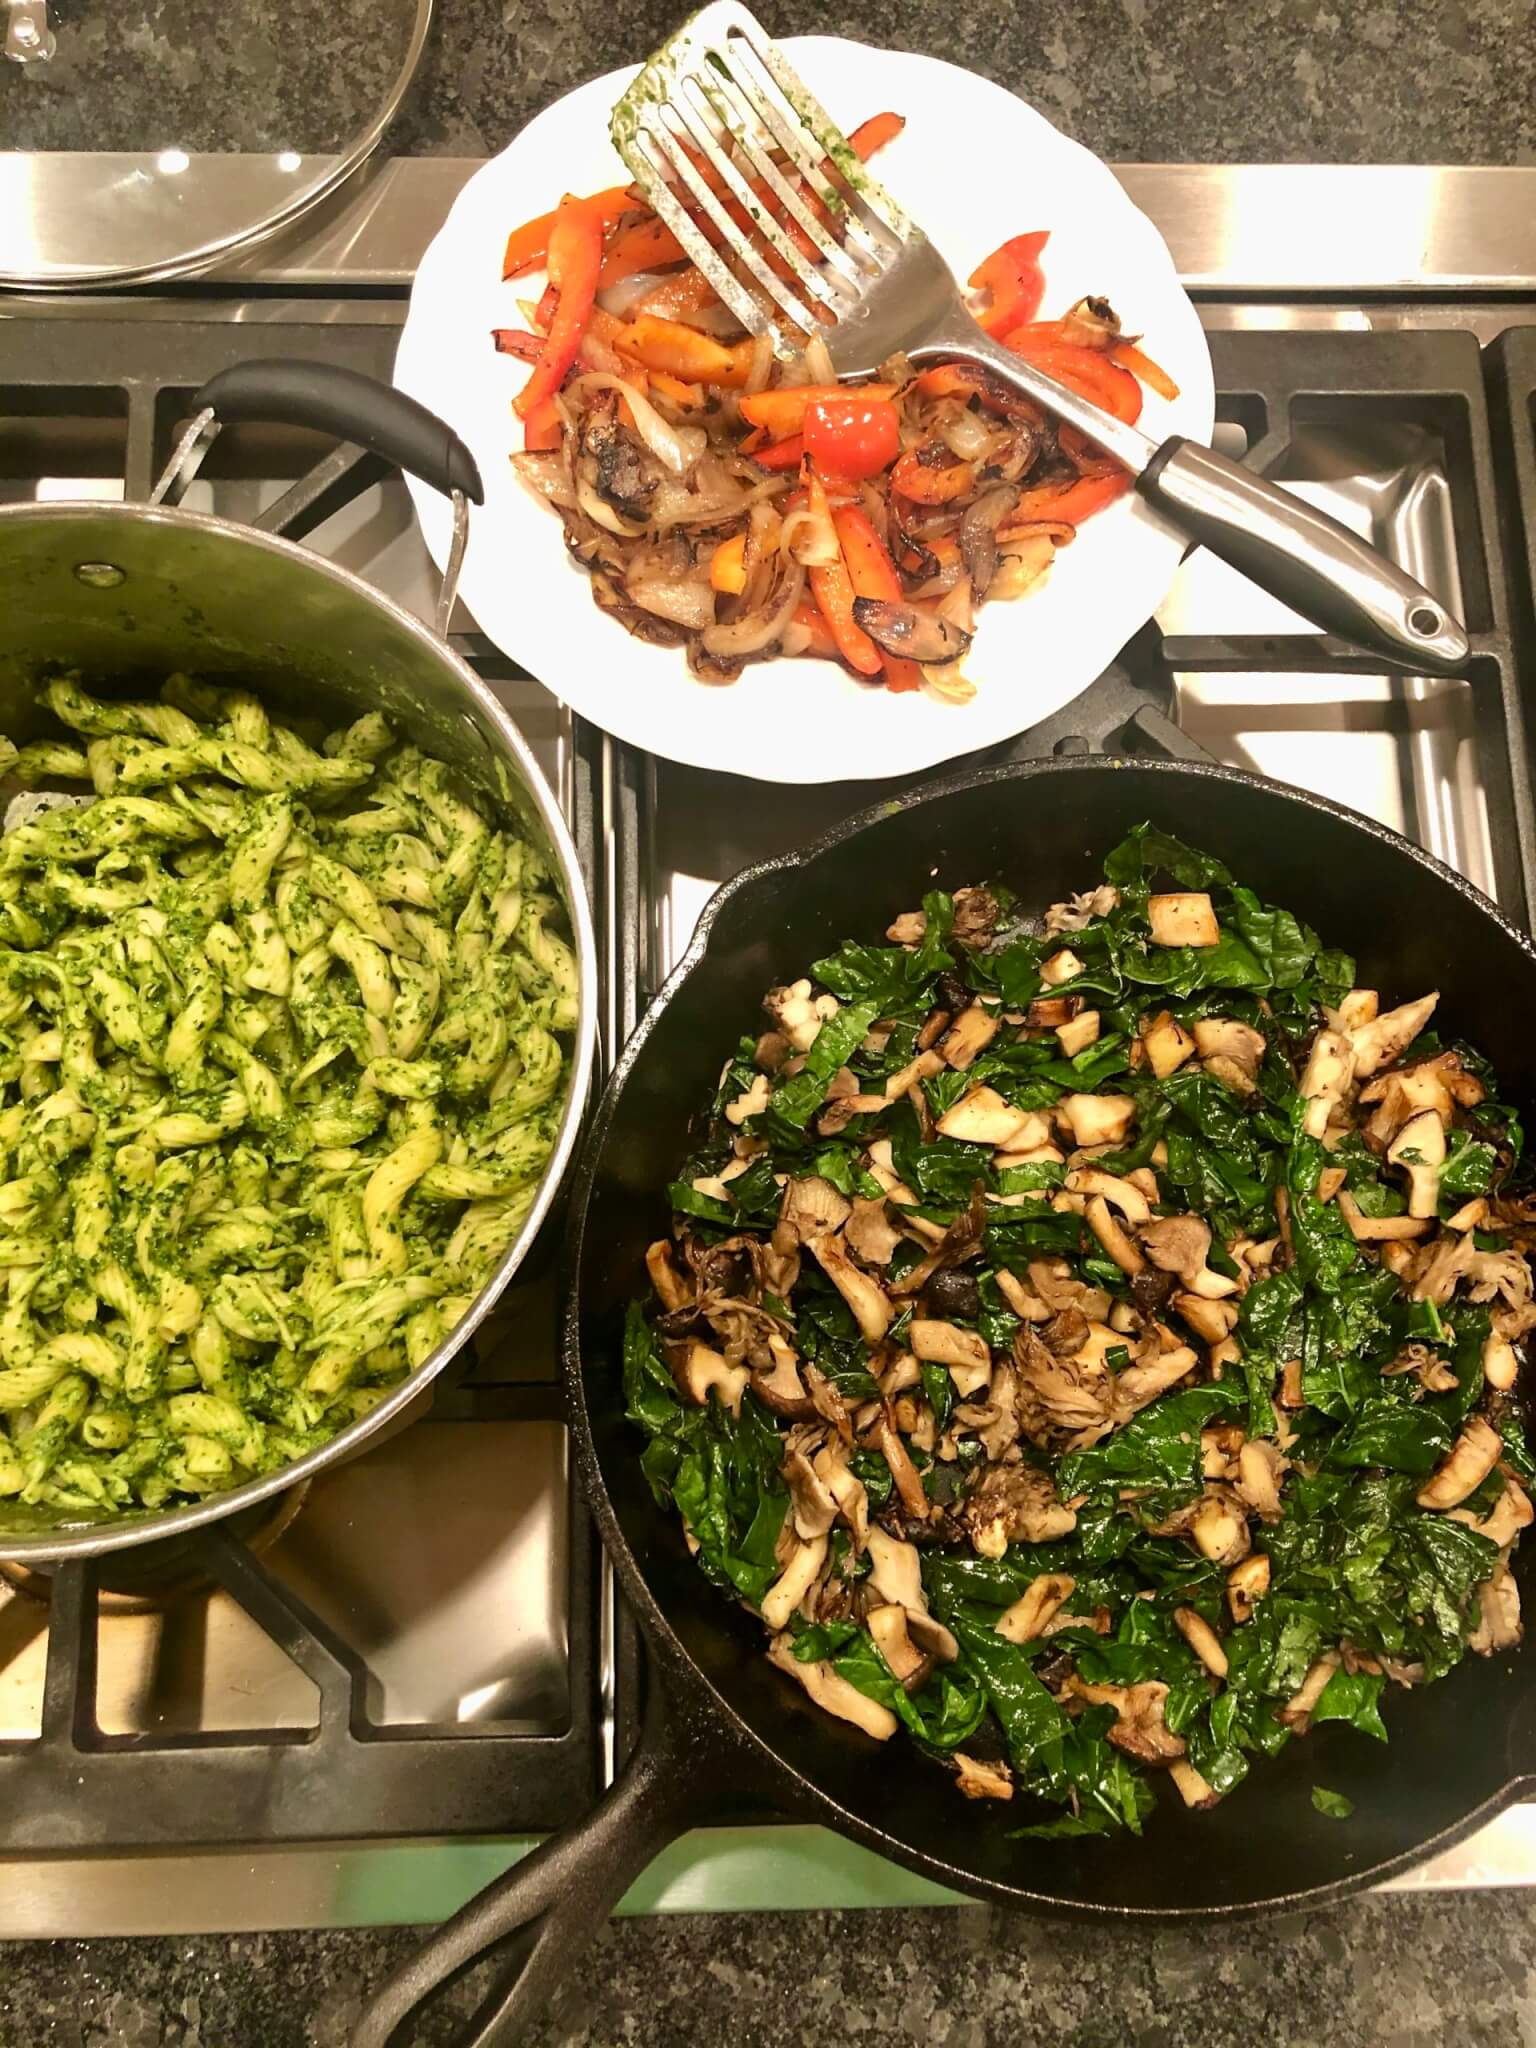 One of the many variations on this satisfyingly healthy pasta dish